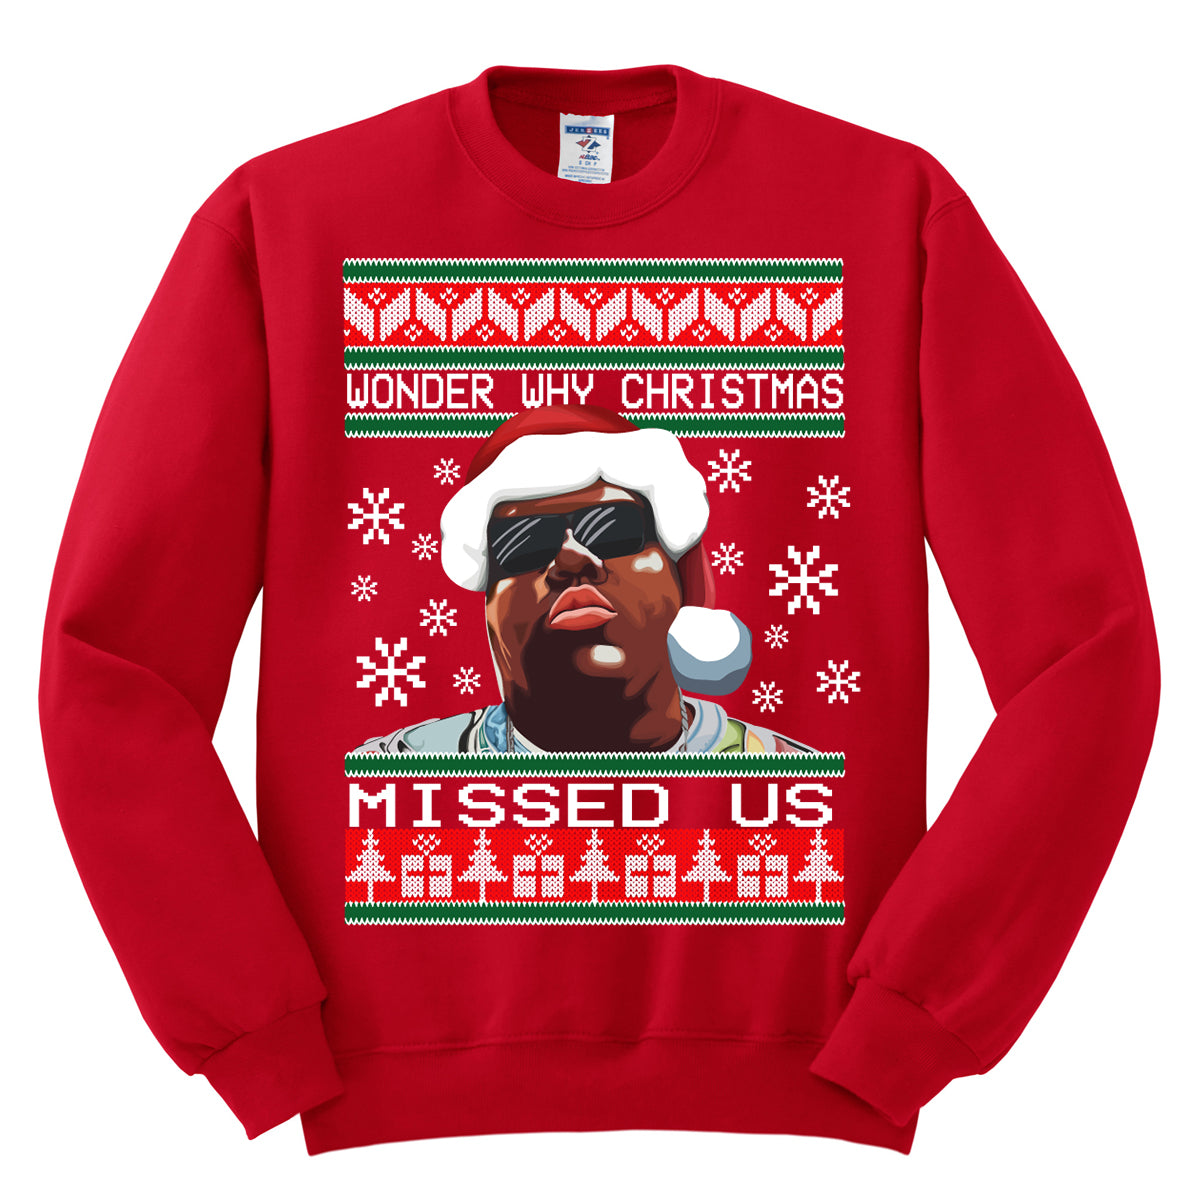 b1874f5caf2 printed on the front of the biggie smalls wonder why christmas missed us  ugly christmas sweater